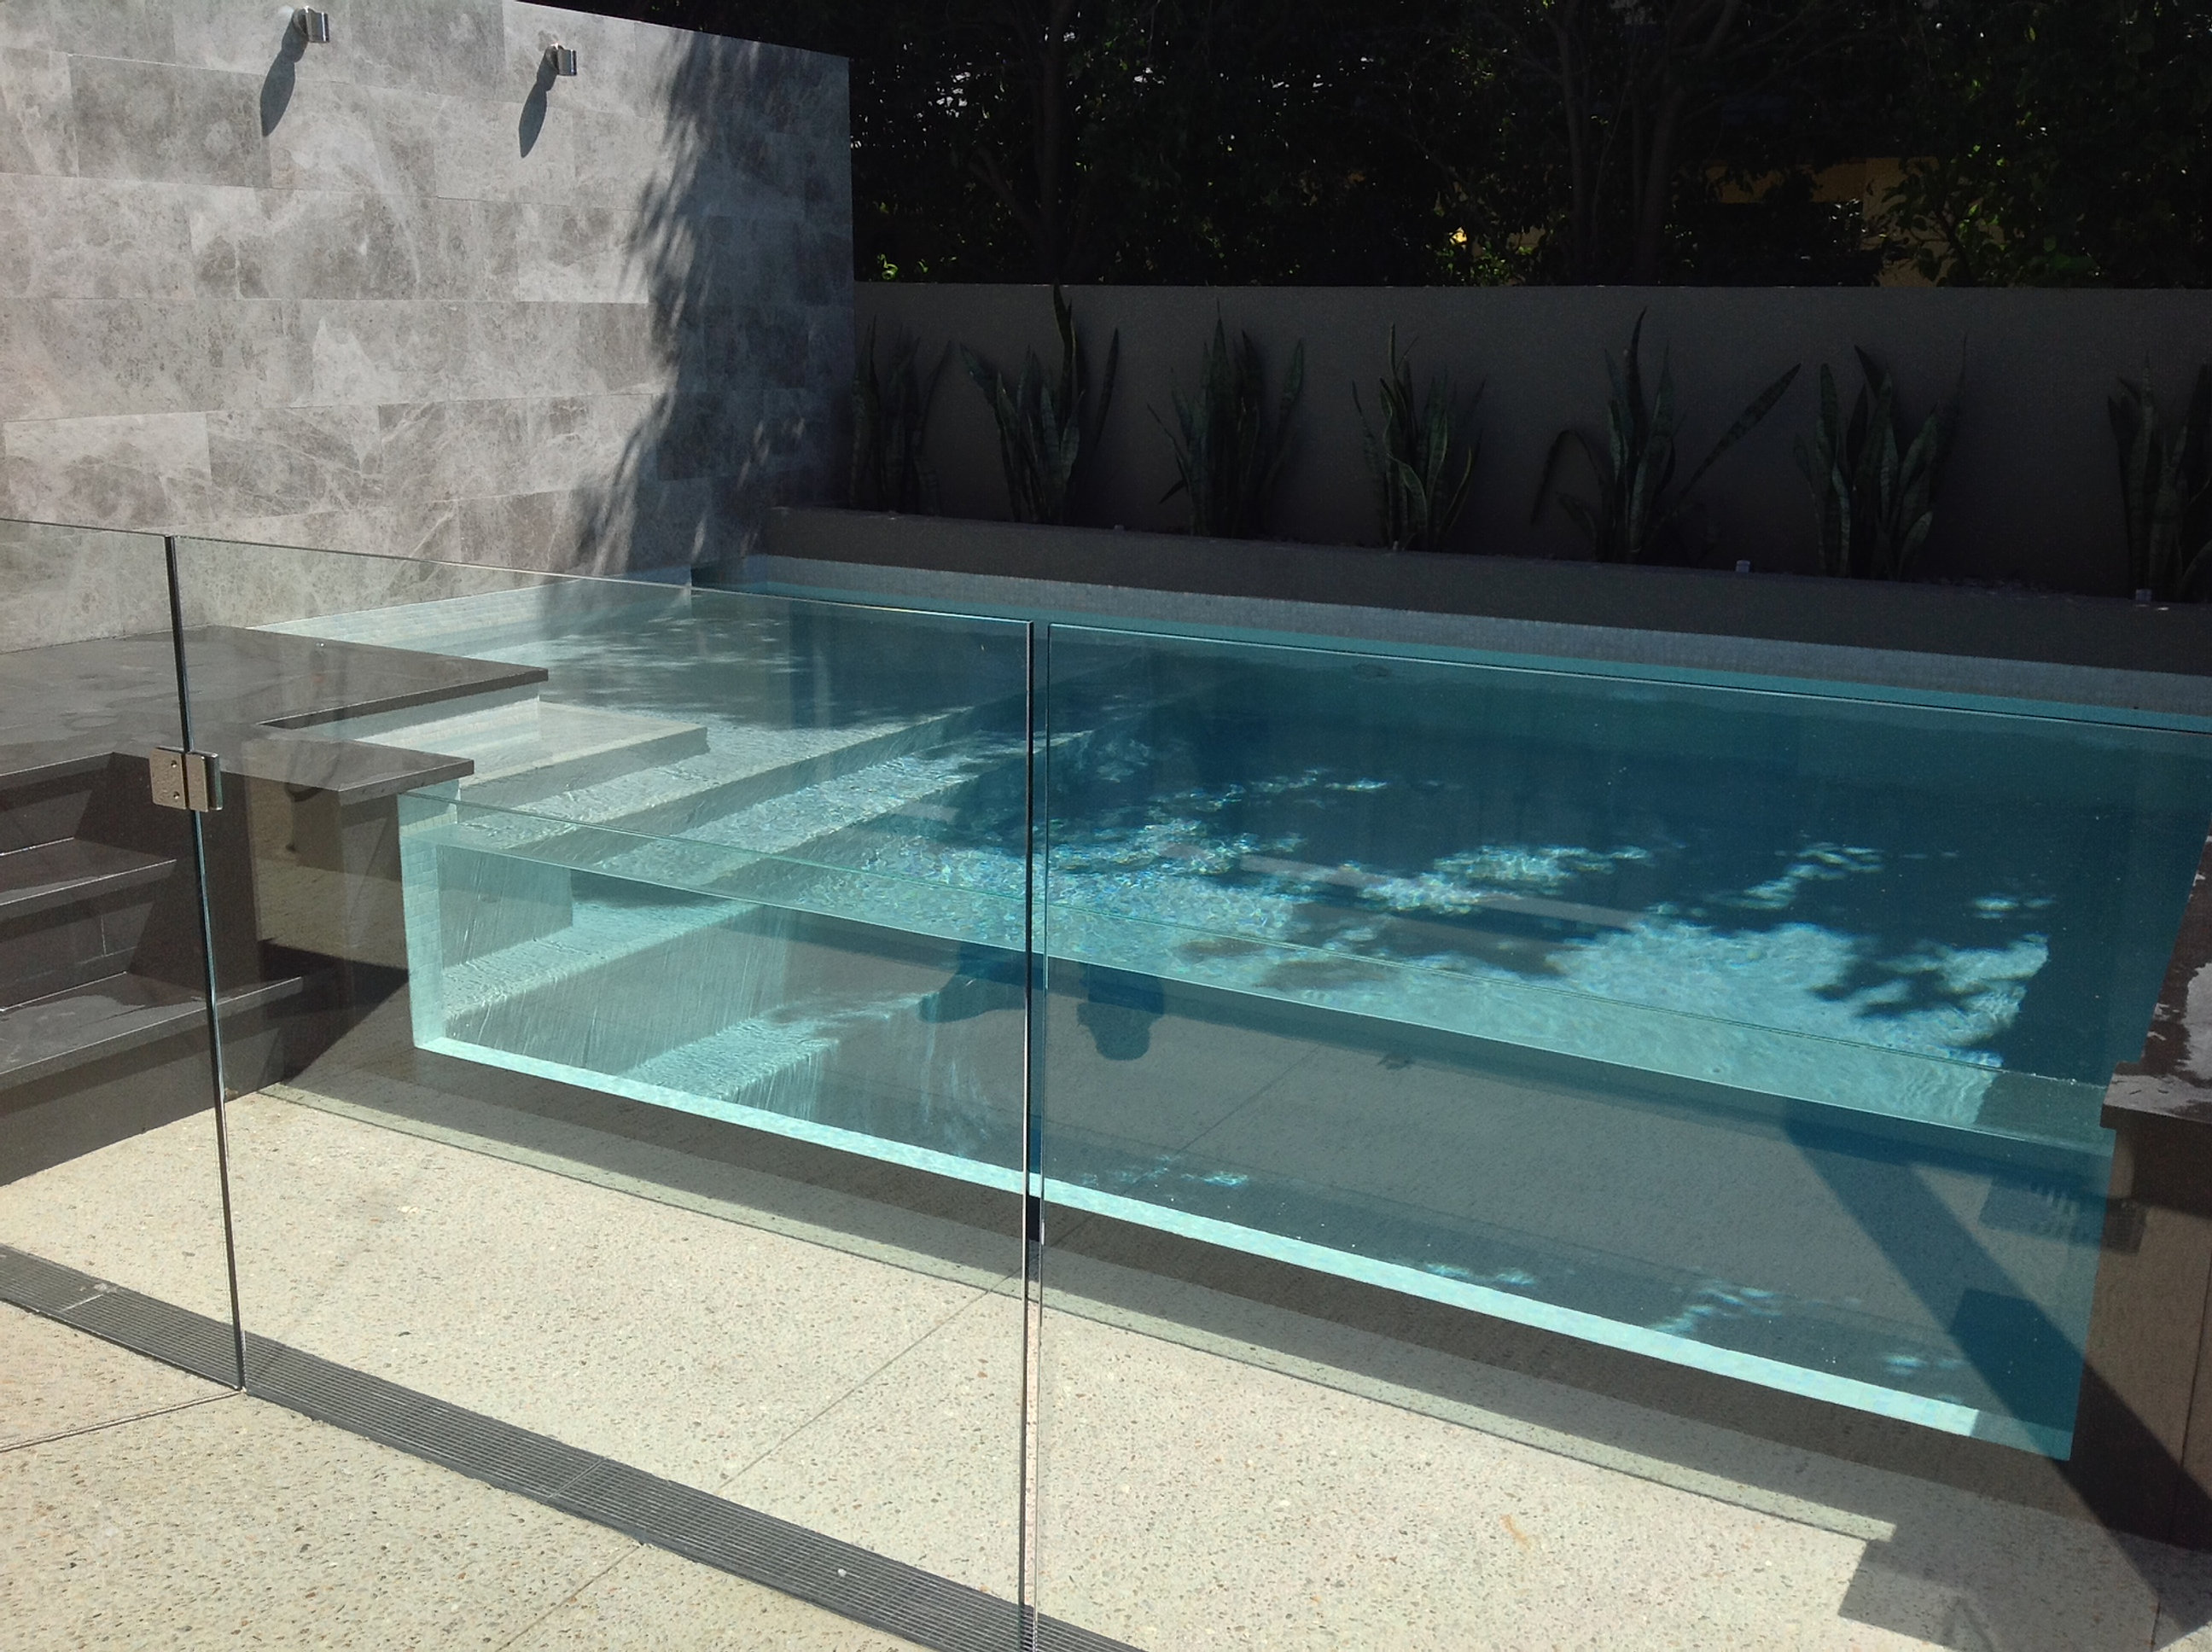 plunge pool design with glass wall